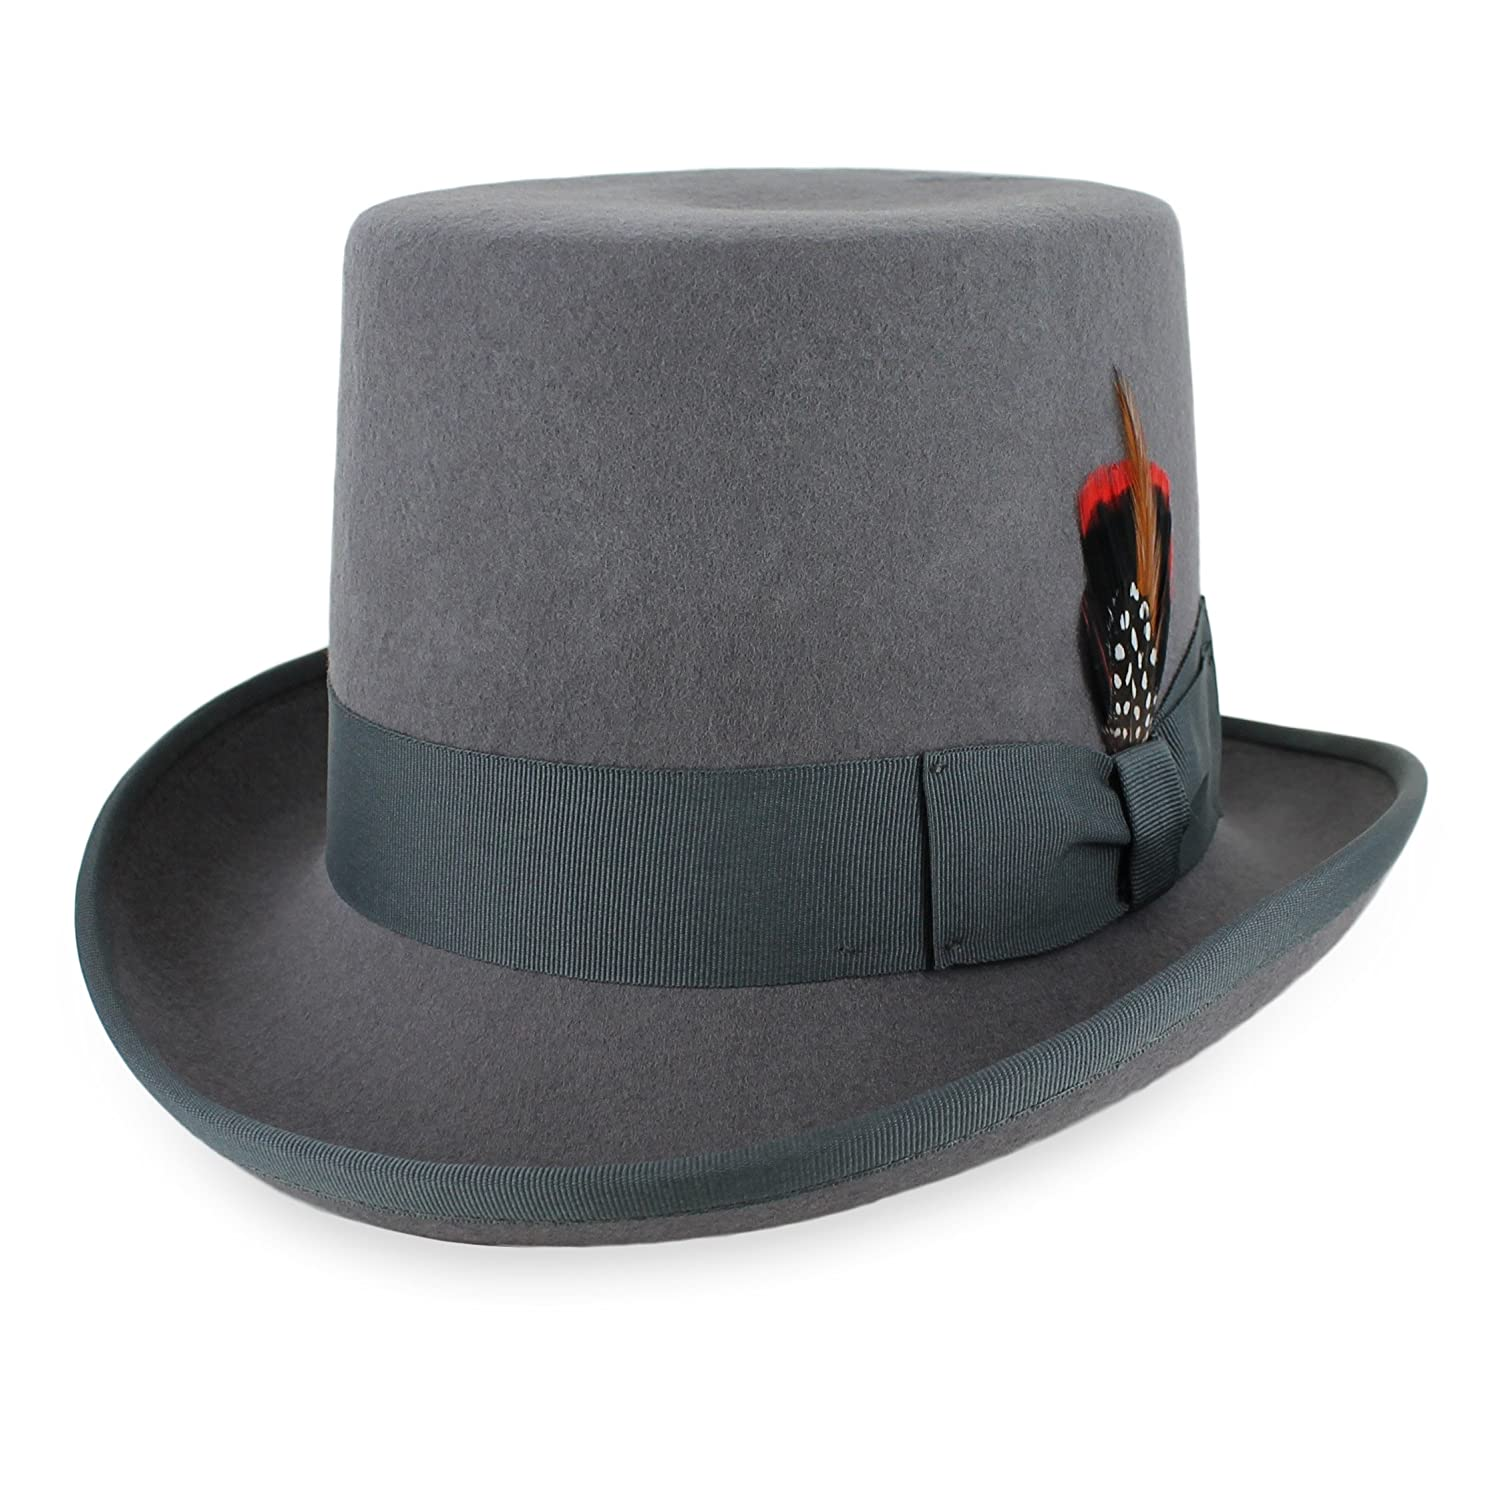 Victorian Men's Hats- Top Hats, Bowler, Gambler Mens Top Hat Satin Lined Topper by Belfry 100% Wool in Black Grey Navy Pearl $39.95 AT vintagedancer.com